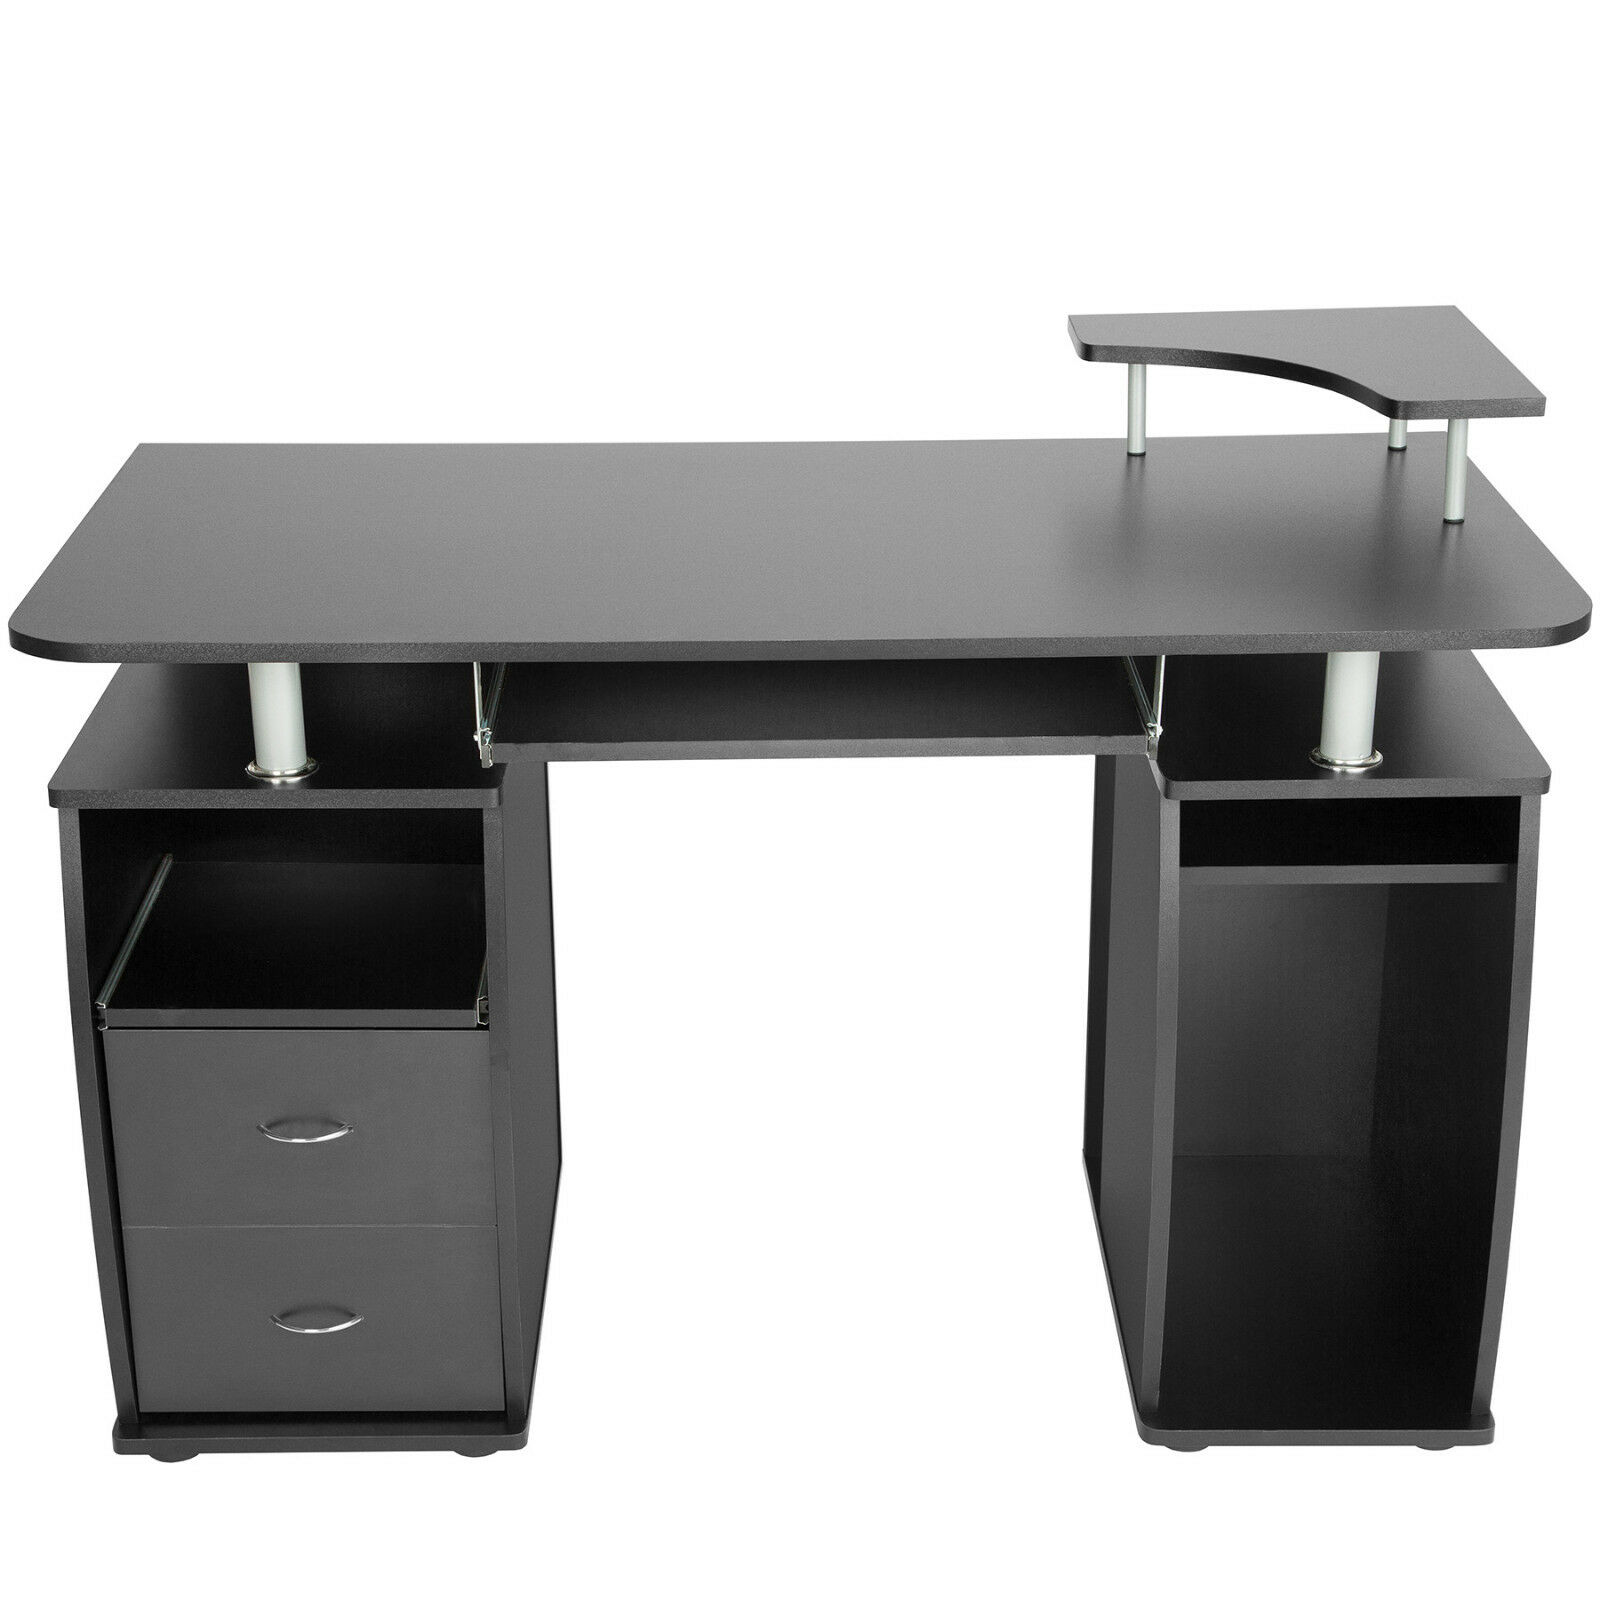 bureau informatique table de l 39 ordinateur travail mobilier meubles pc noir eur 89 90 picclick fr. Black Bedroom Furniture Sets. Home Design Ideas